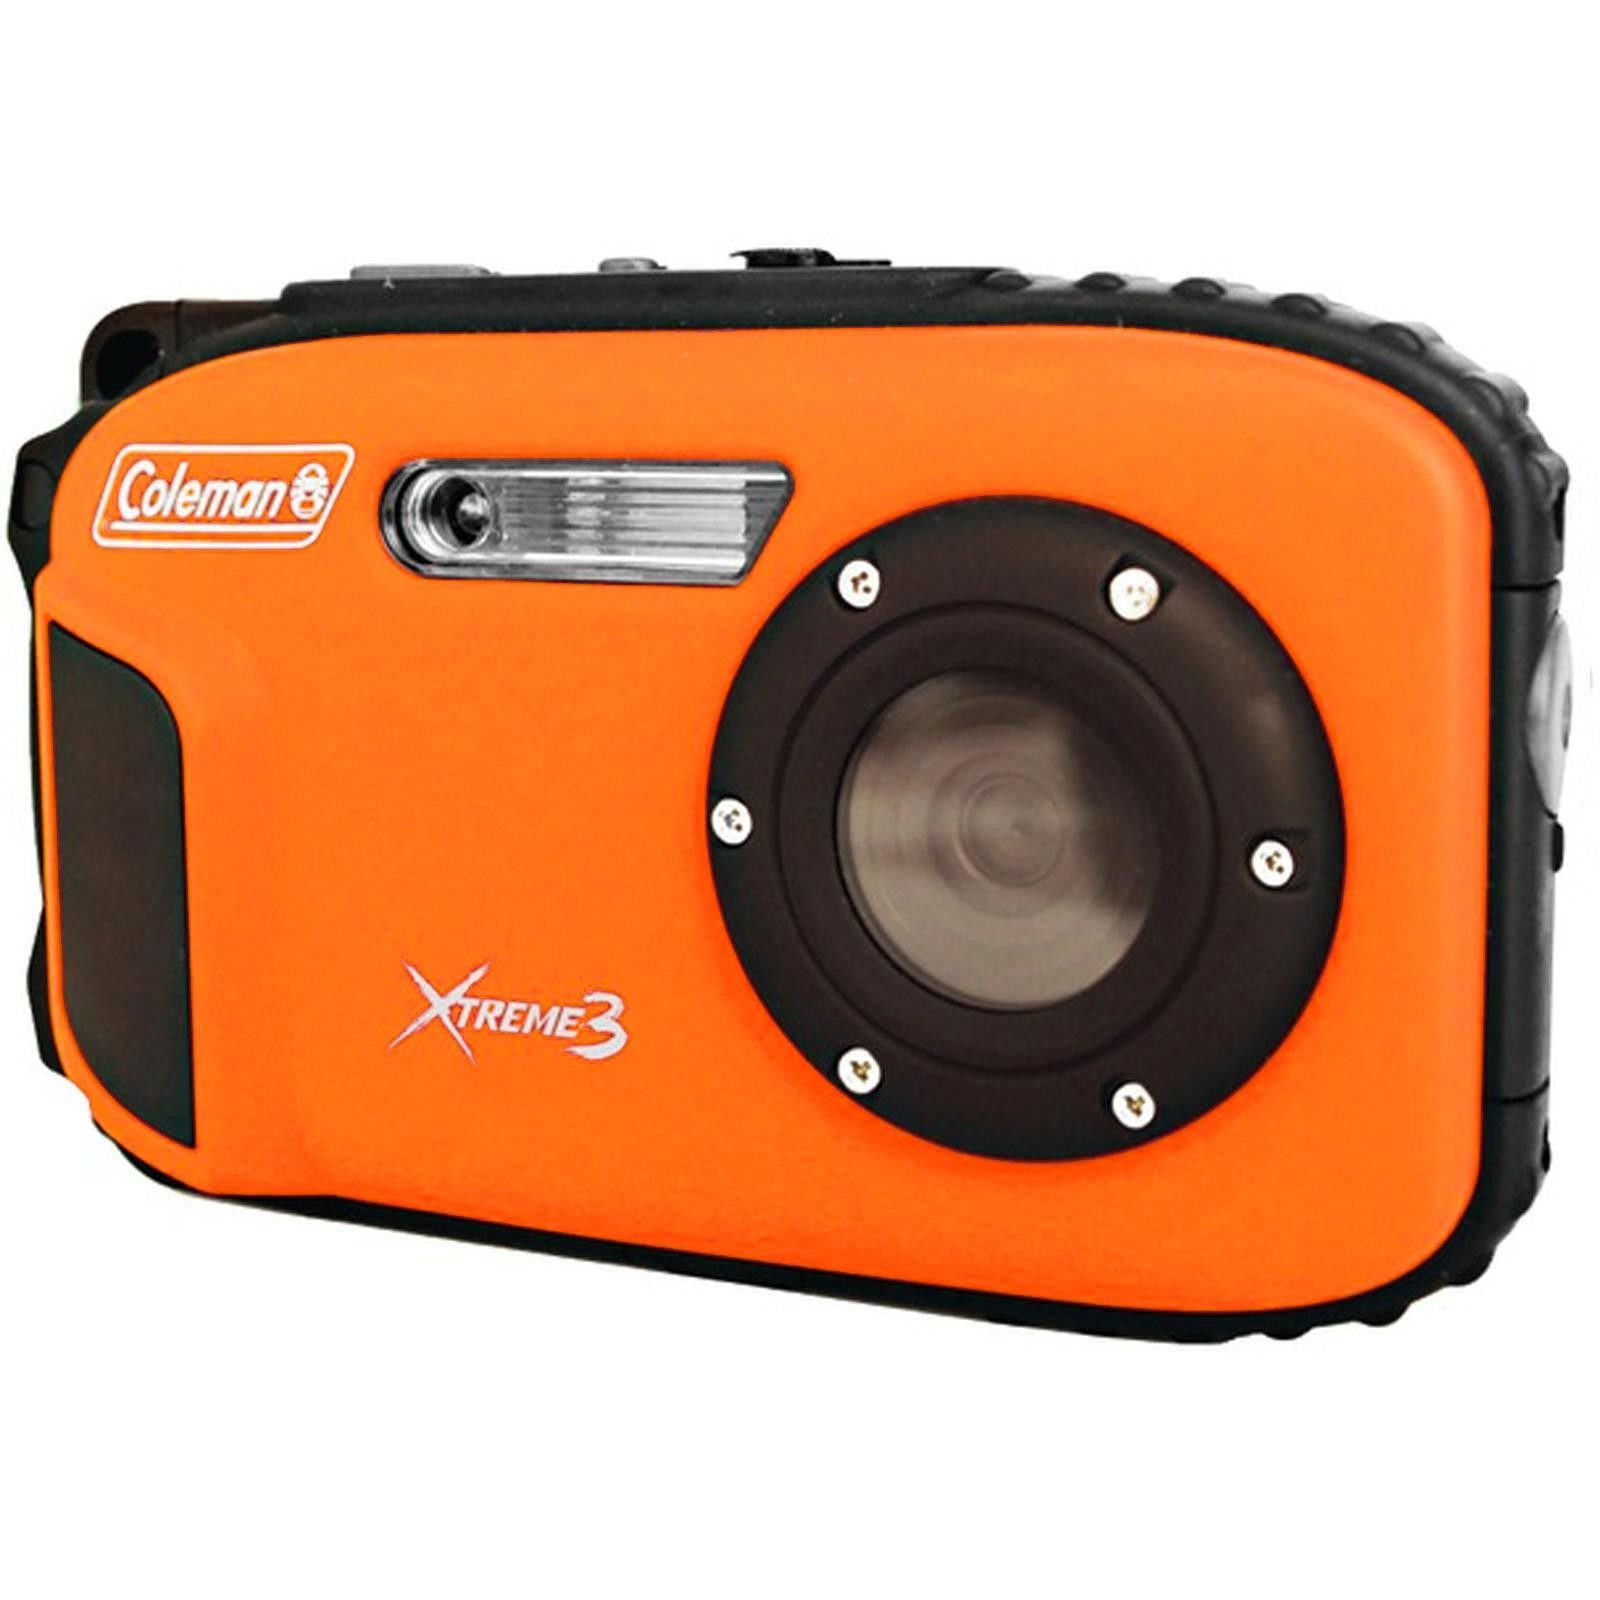 Coleman 20.0 MP-HD Waterproof Digital Camera-Orange